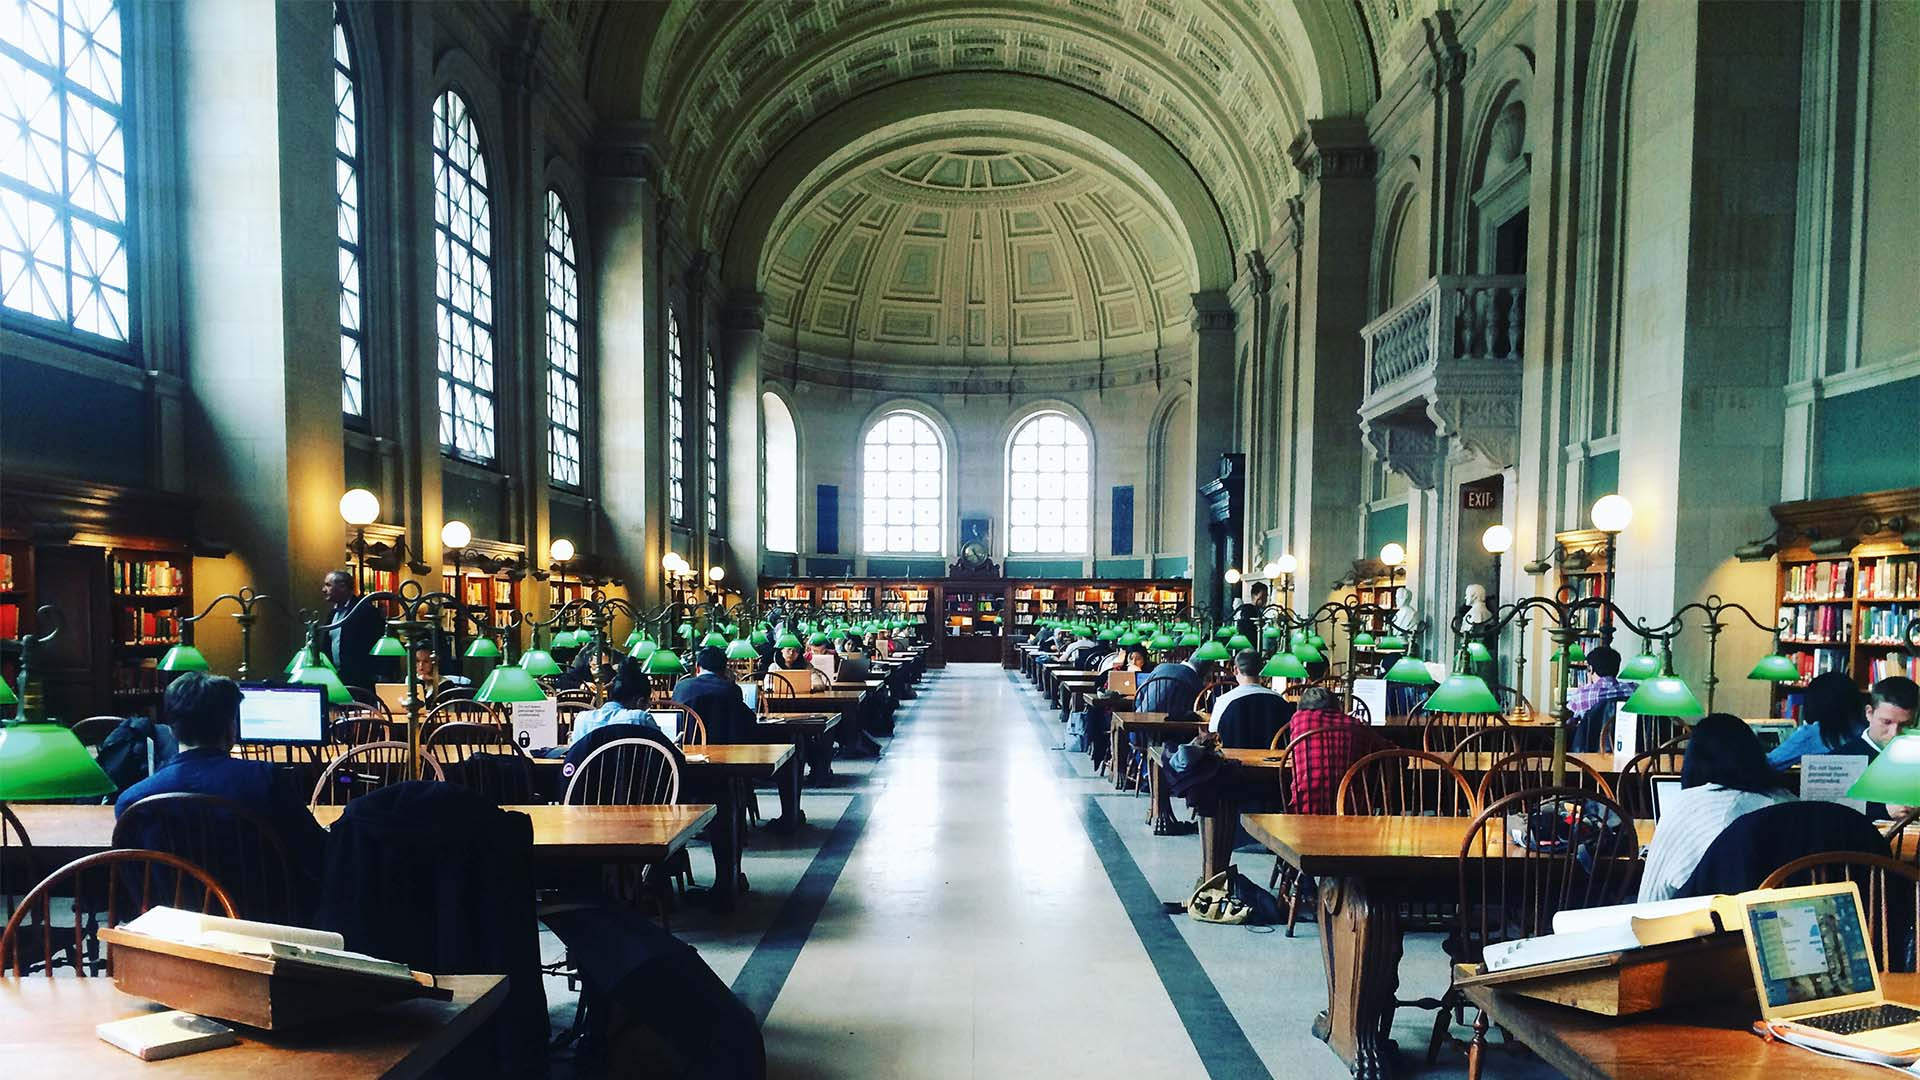 The inside of Boston Public Library, with lamps lit and people at work